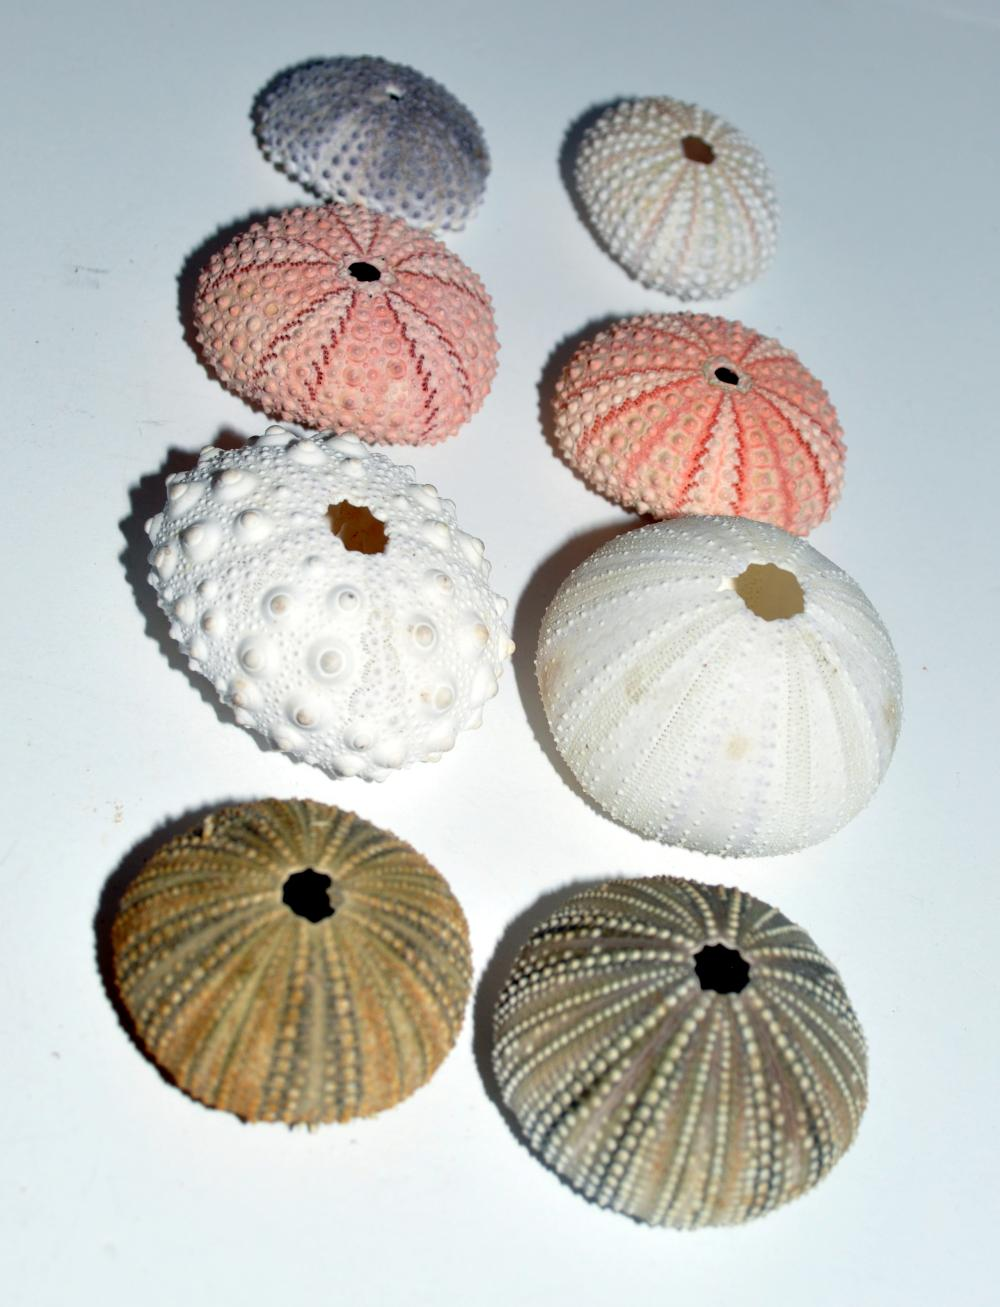 Sea urchin collection - 8